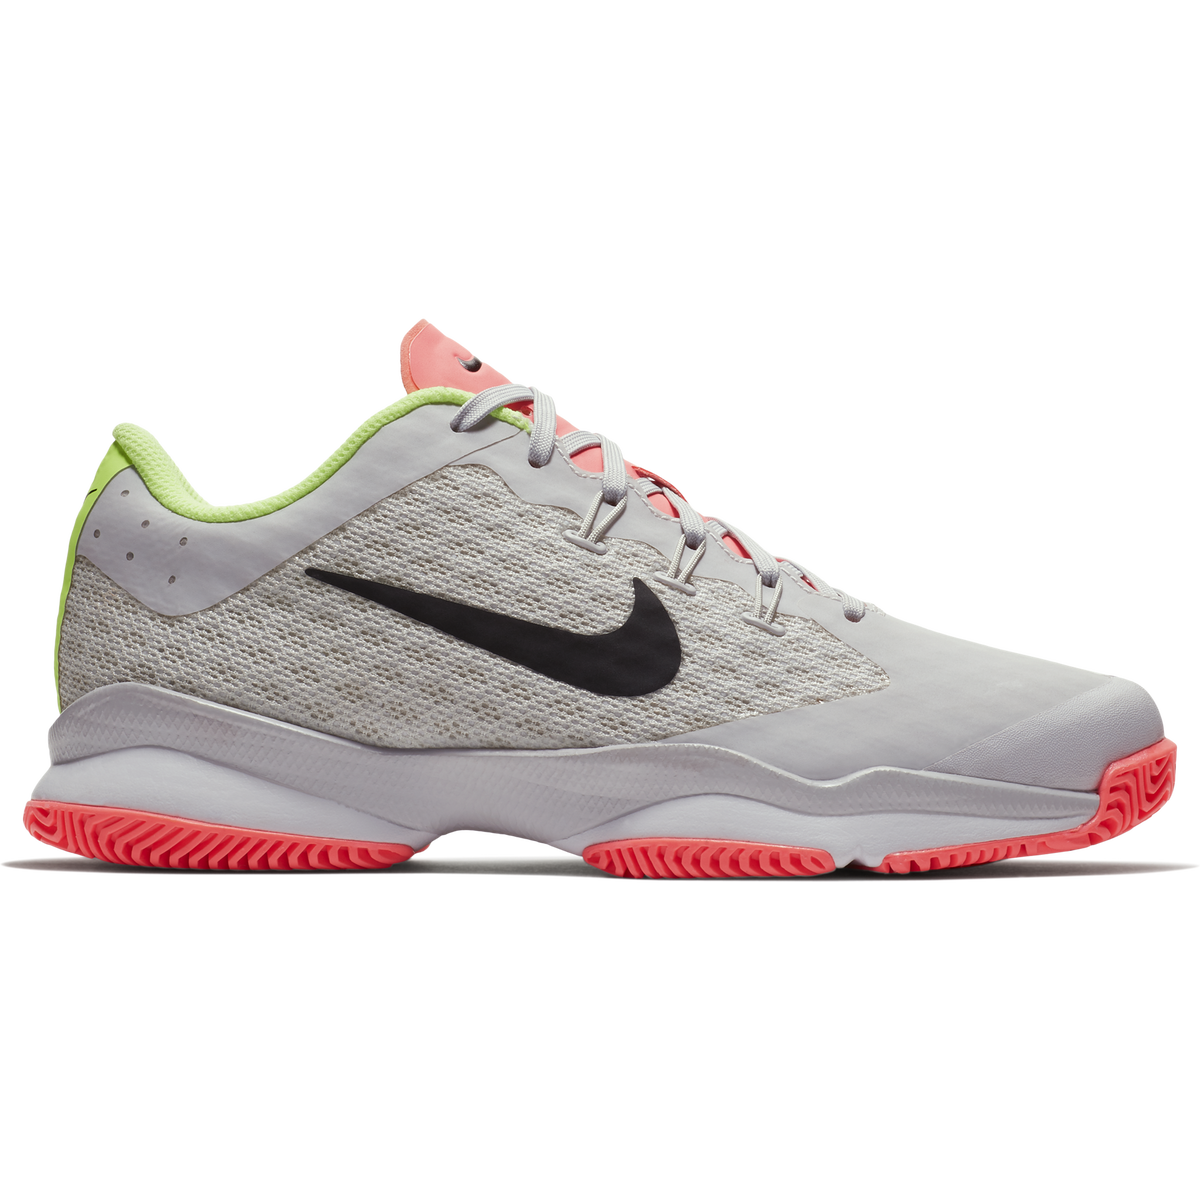 differently 6d4af 1fe3f Images. Nike Air Zoom Ultra ...